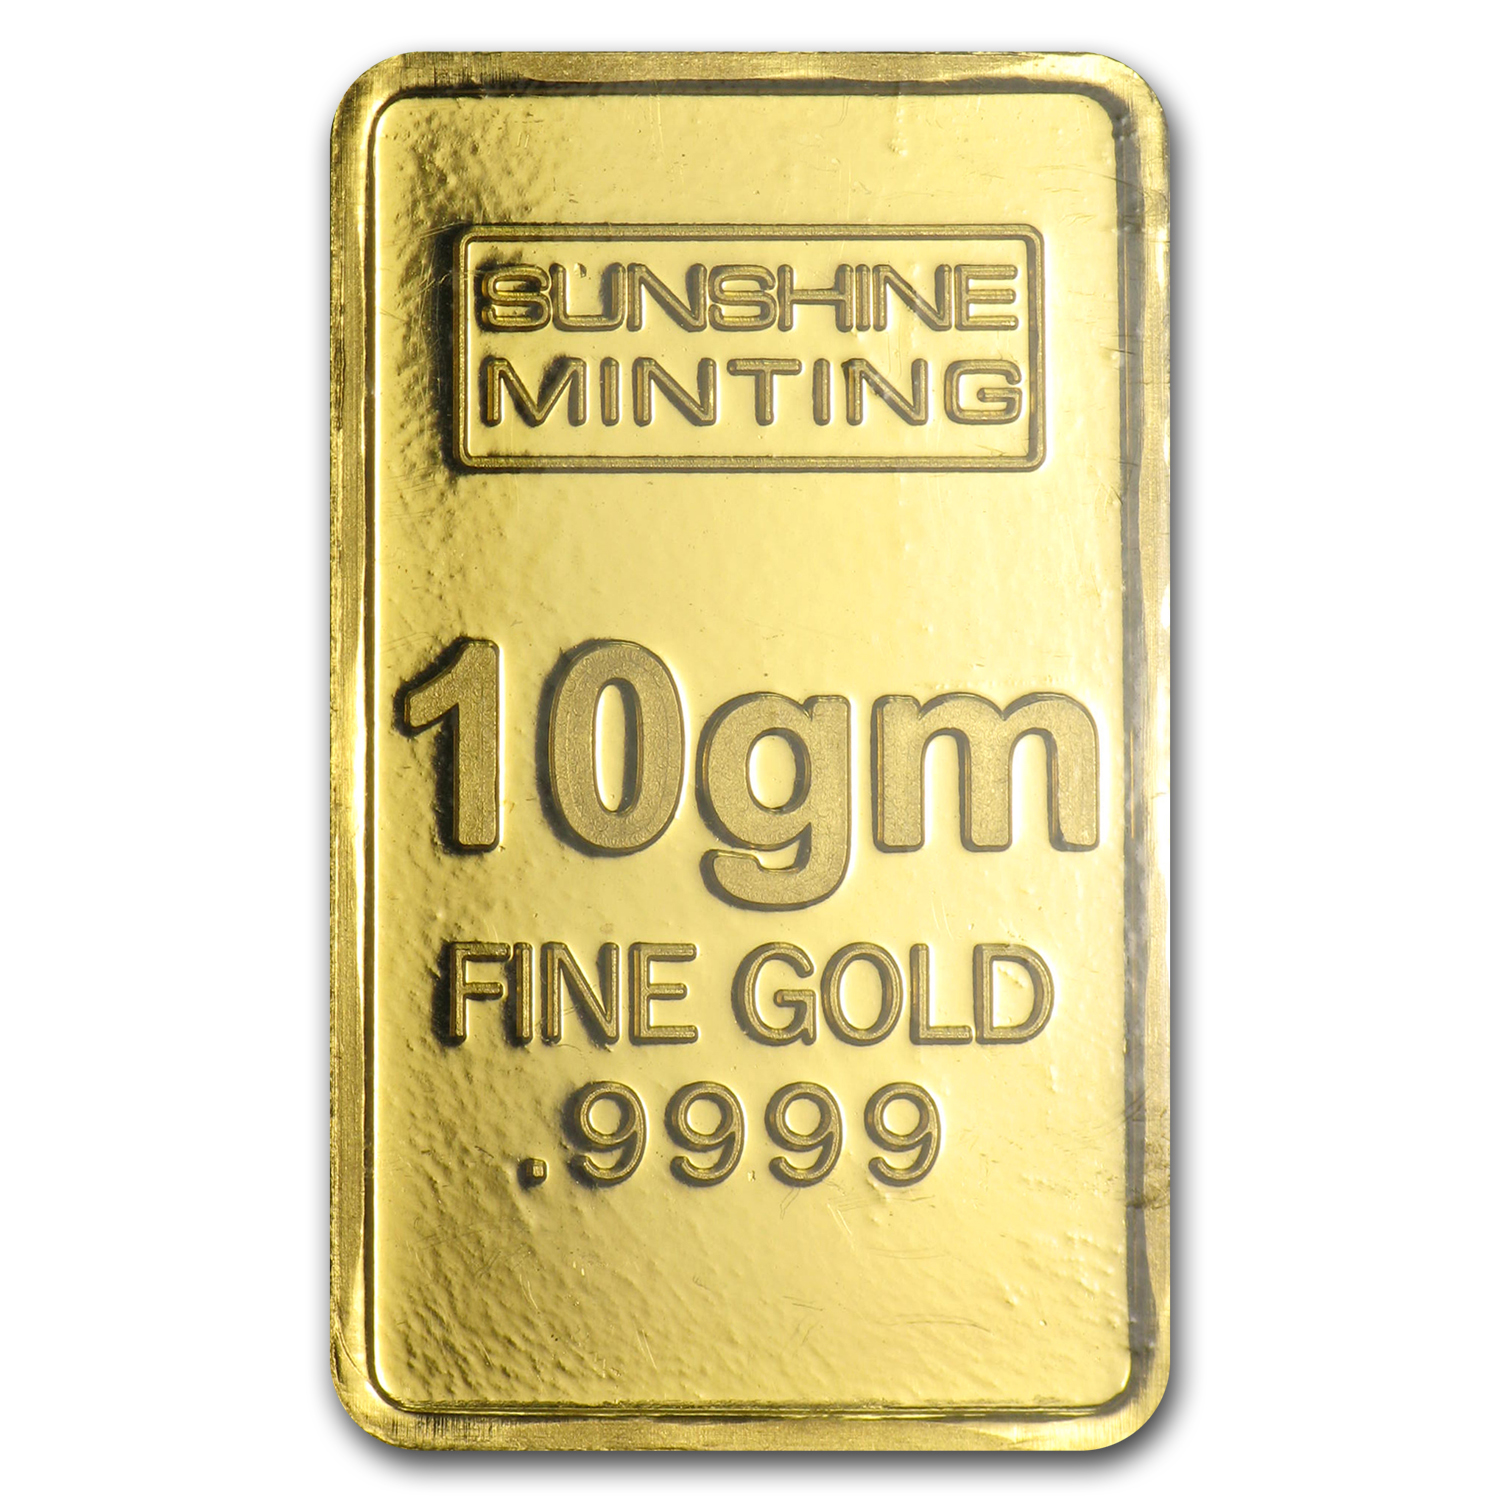 10 gram Gold Bar - Sunshine Minting (Old Design in TEP Packaging)